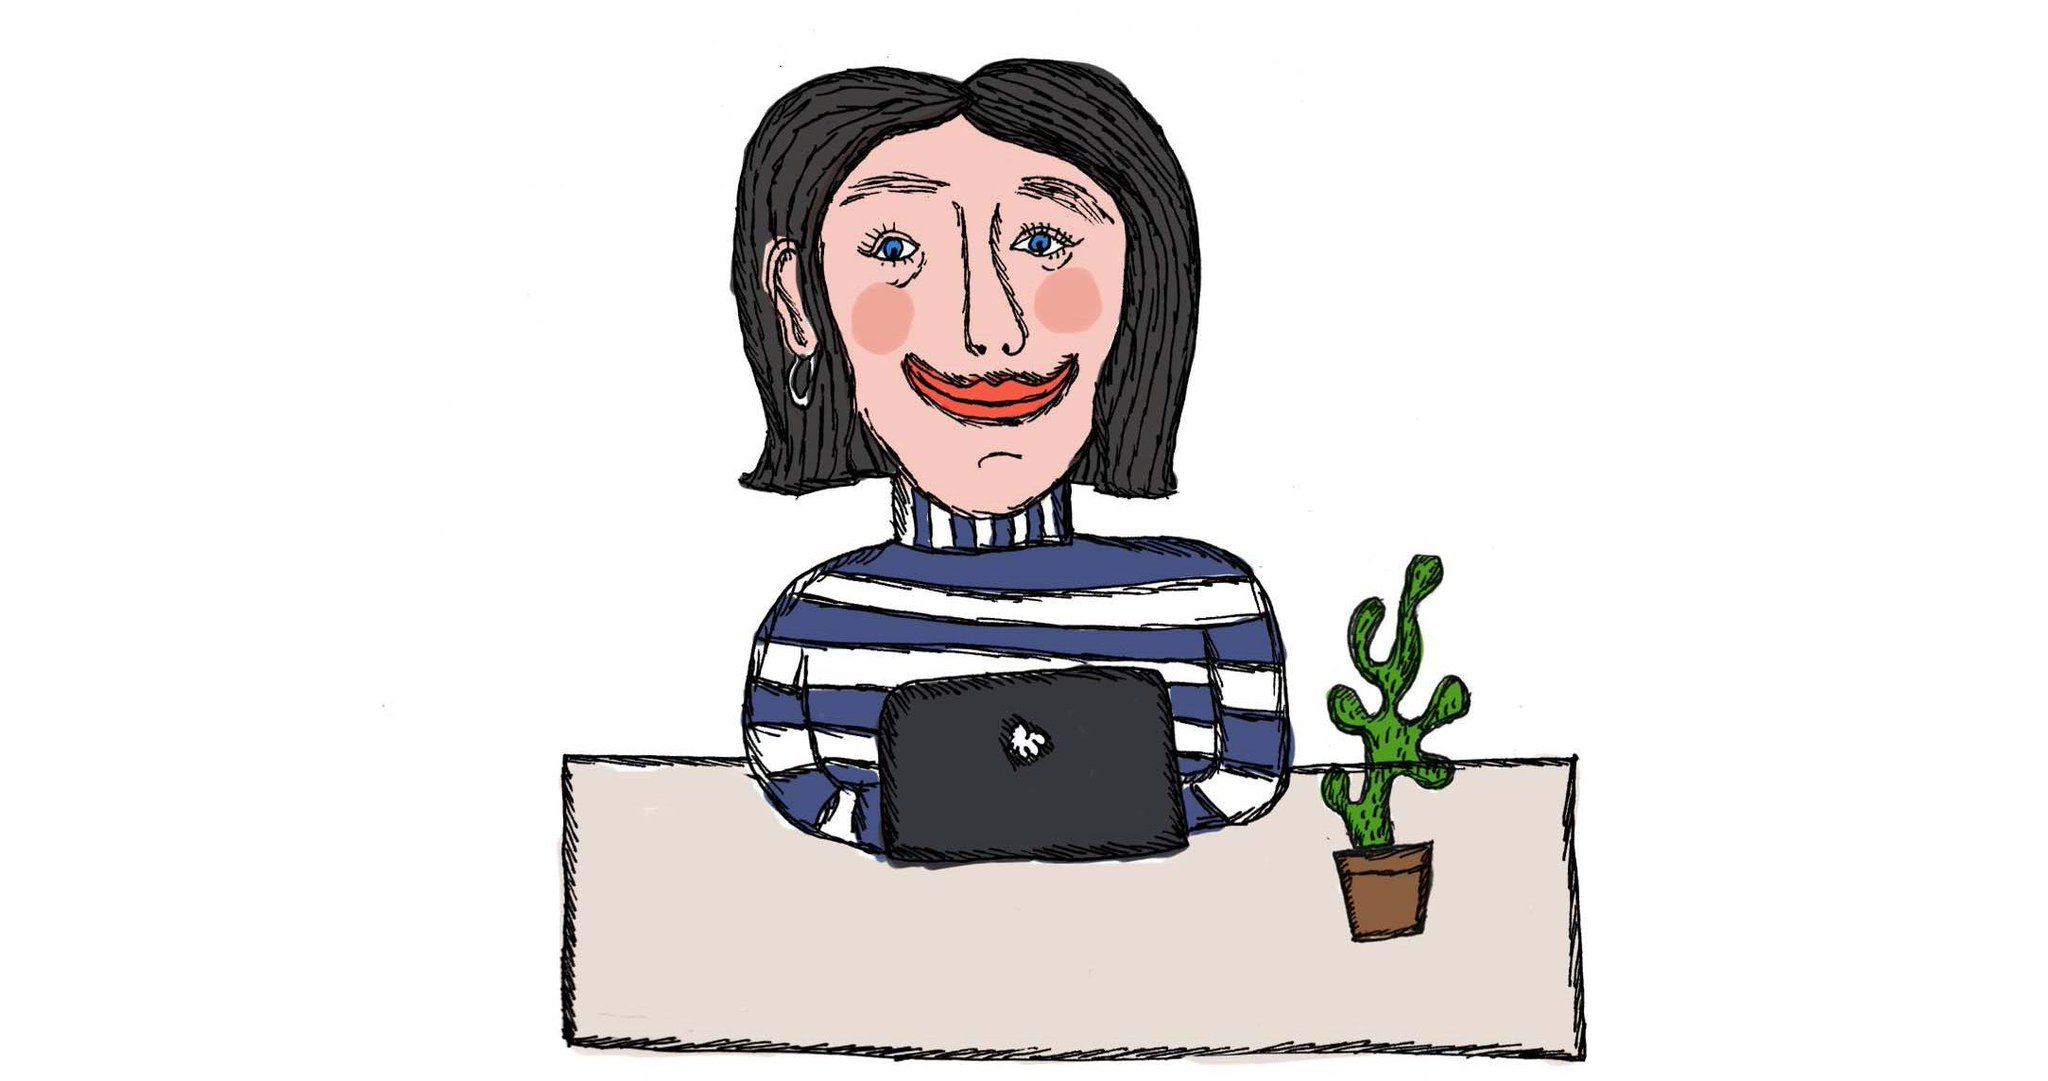 RT @StandardIssueUK: Never listened to a podcast before? Worry not. We have a how-to guide. https://t.co/IDATqOWxo3 https://t.co/mIrZmREFqe